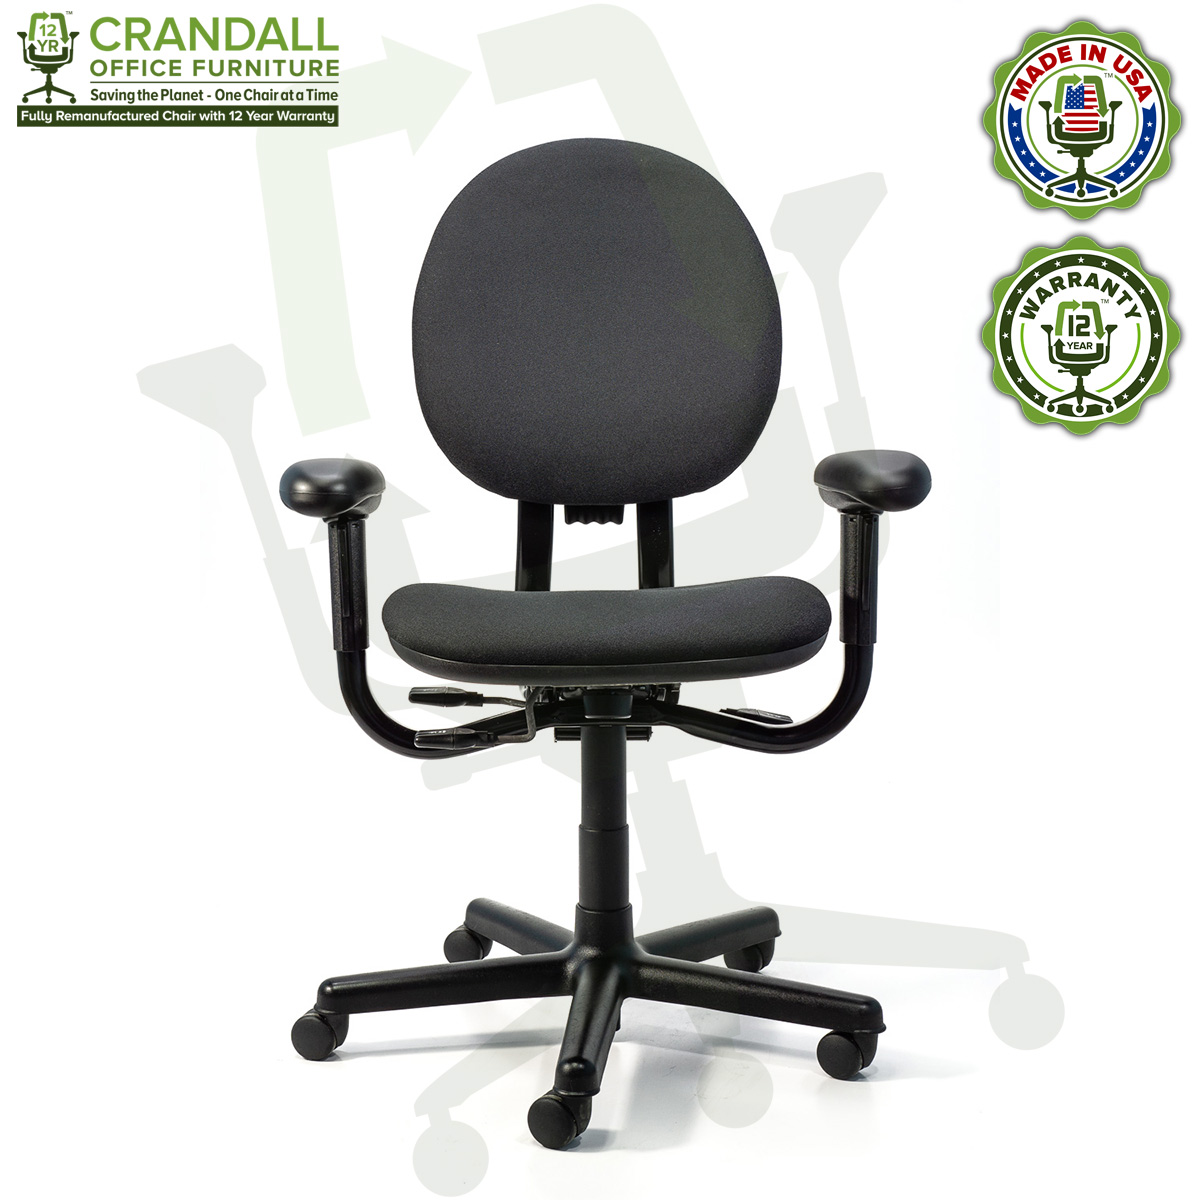 Remanufactured Steelcase 47 Criterion Office Chair